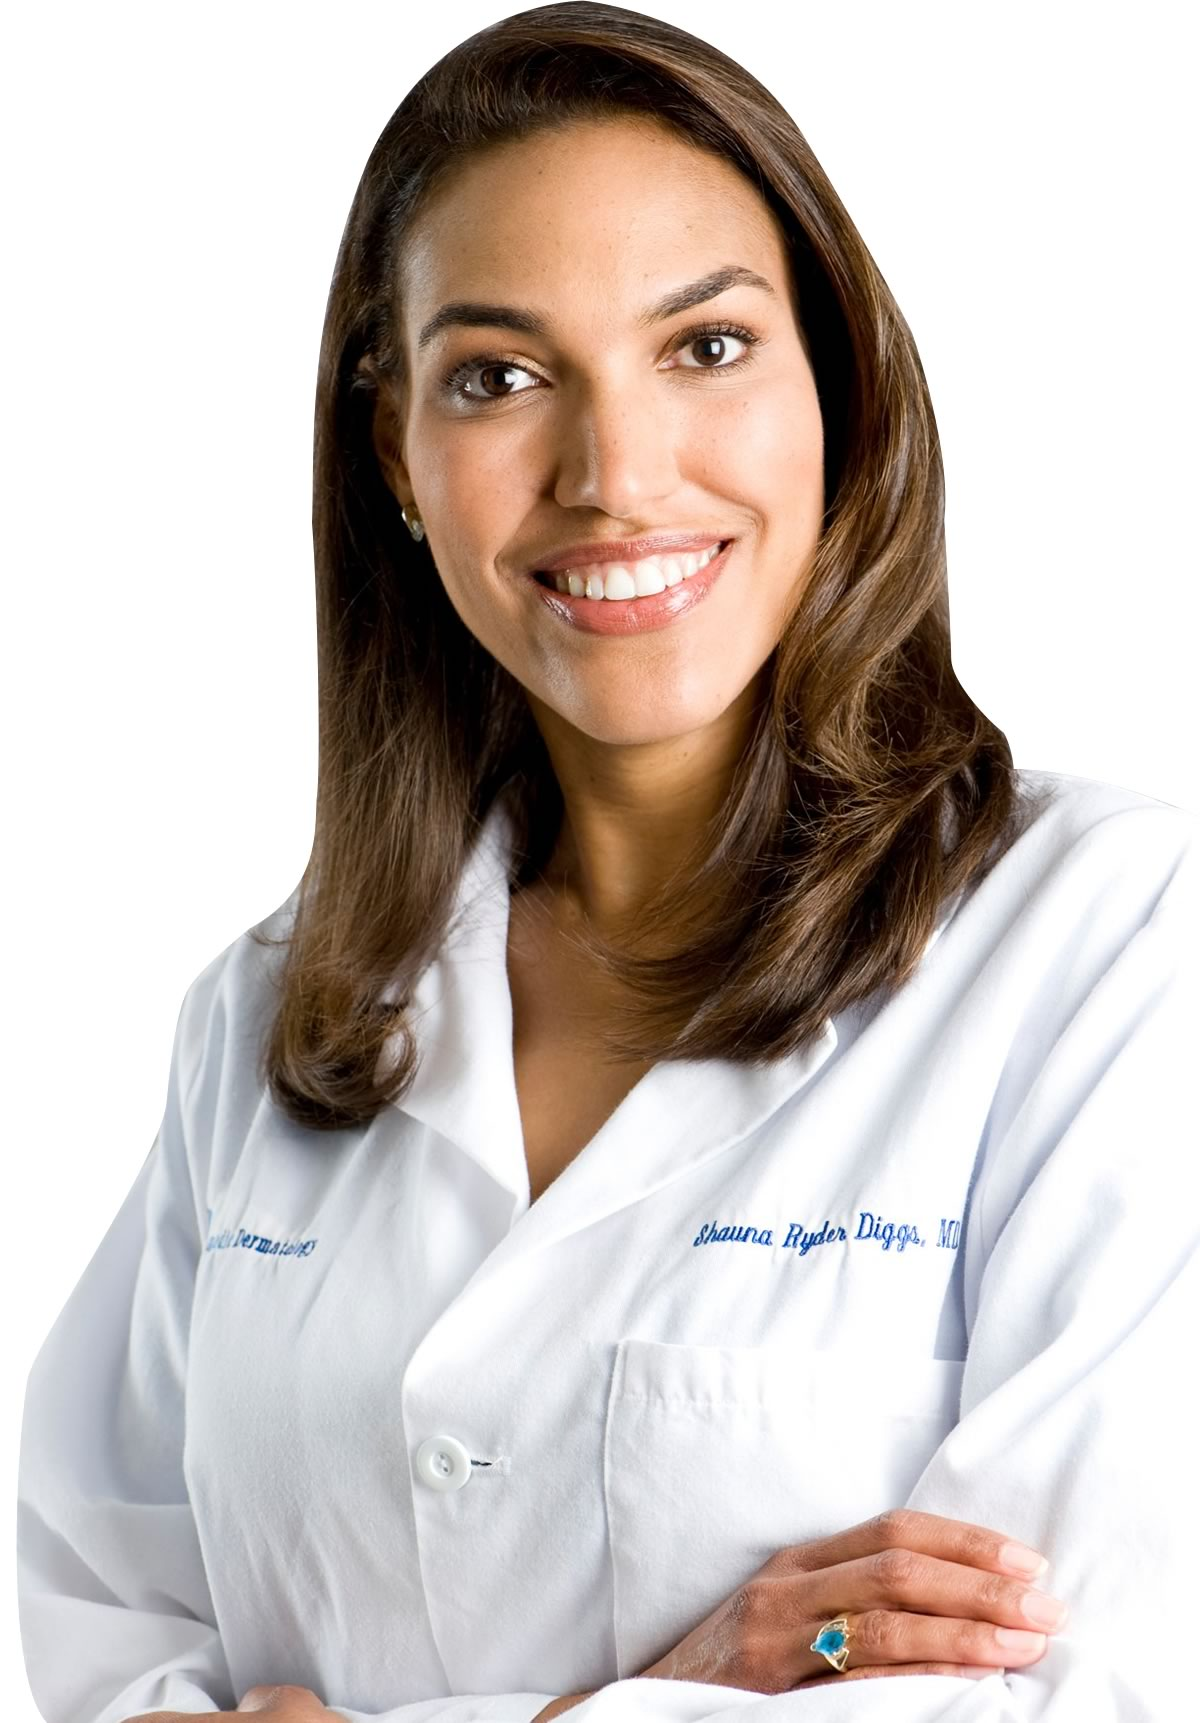 Dr. Shauna Ryder Diggs is a dermatologist in solo private practice at Cosmedic Dermatology:    Shauna Ryder Diggs, MD, PC.  She practices general, cosmetic, and laser dermatology, with over   22 years of laser dermatology experience. Dr. Diggs specializes in using the latest advancements   in dermatology for skin rejuvenation, and has created the CosmedicDerm Professional Skin Care   product line which maintains youthful, clear, vibrant skin.  Dr. Shauna Ryder Diggs is a graduate of the University of Michigan Inteflex Program with its   combined seven year medical school and undergraduate education.  She then advanced to her   Internal Medicine Internship at the University of Michigan Medical Center in Ann Arbor.  Her   specialty training was completed at the University of Michigan Dermatology Residency program,   where she developed expertise in autoimmune, infectious, benign and malignant dermatoses.  She   participated in basic science research on psoriasis studying the maturation of psoriasis involved   cells.  Dr. Diggs is a board certified dermatologist of the American Board of Dermatology, and a   fellow of the American Academy of Dermatology and the American Society of Dermatologic   Surgeons and a member of the Michigan Dermatological Society.  She has been a lecturer at the   University of Michigan Medical School to second-year medical students as well as the Dental   School, teaching in the dermatology modules.